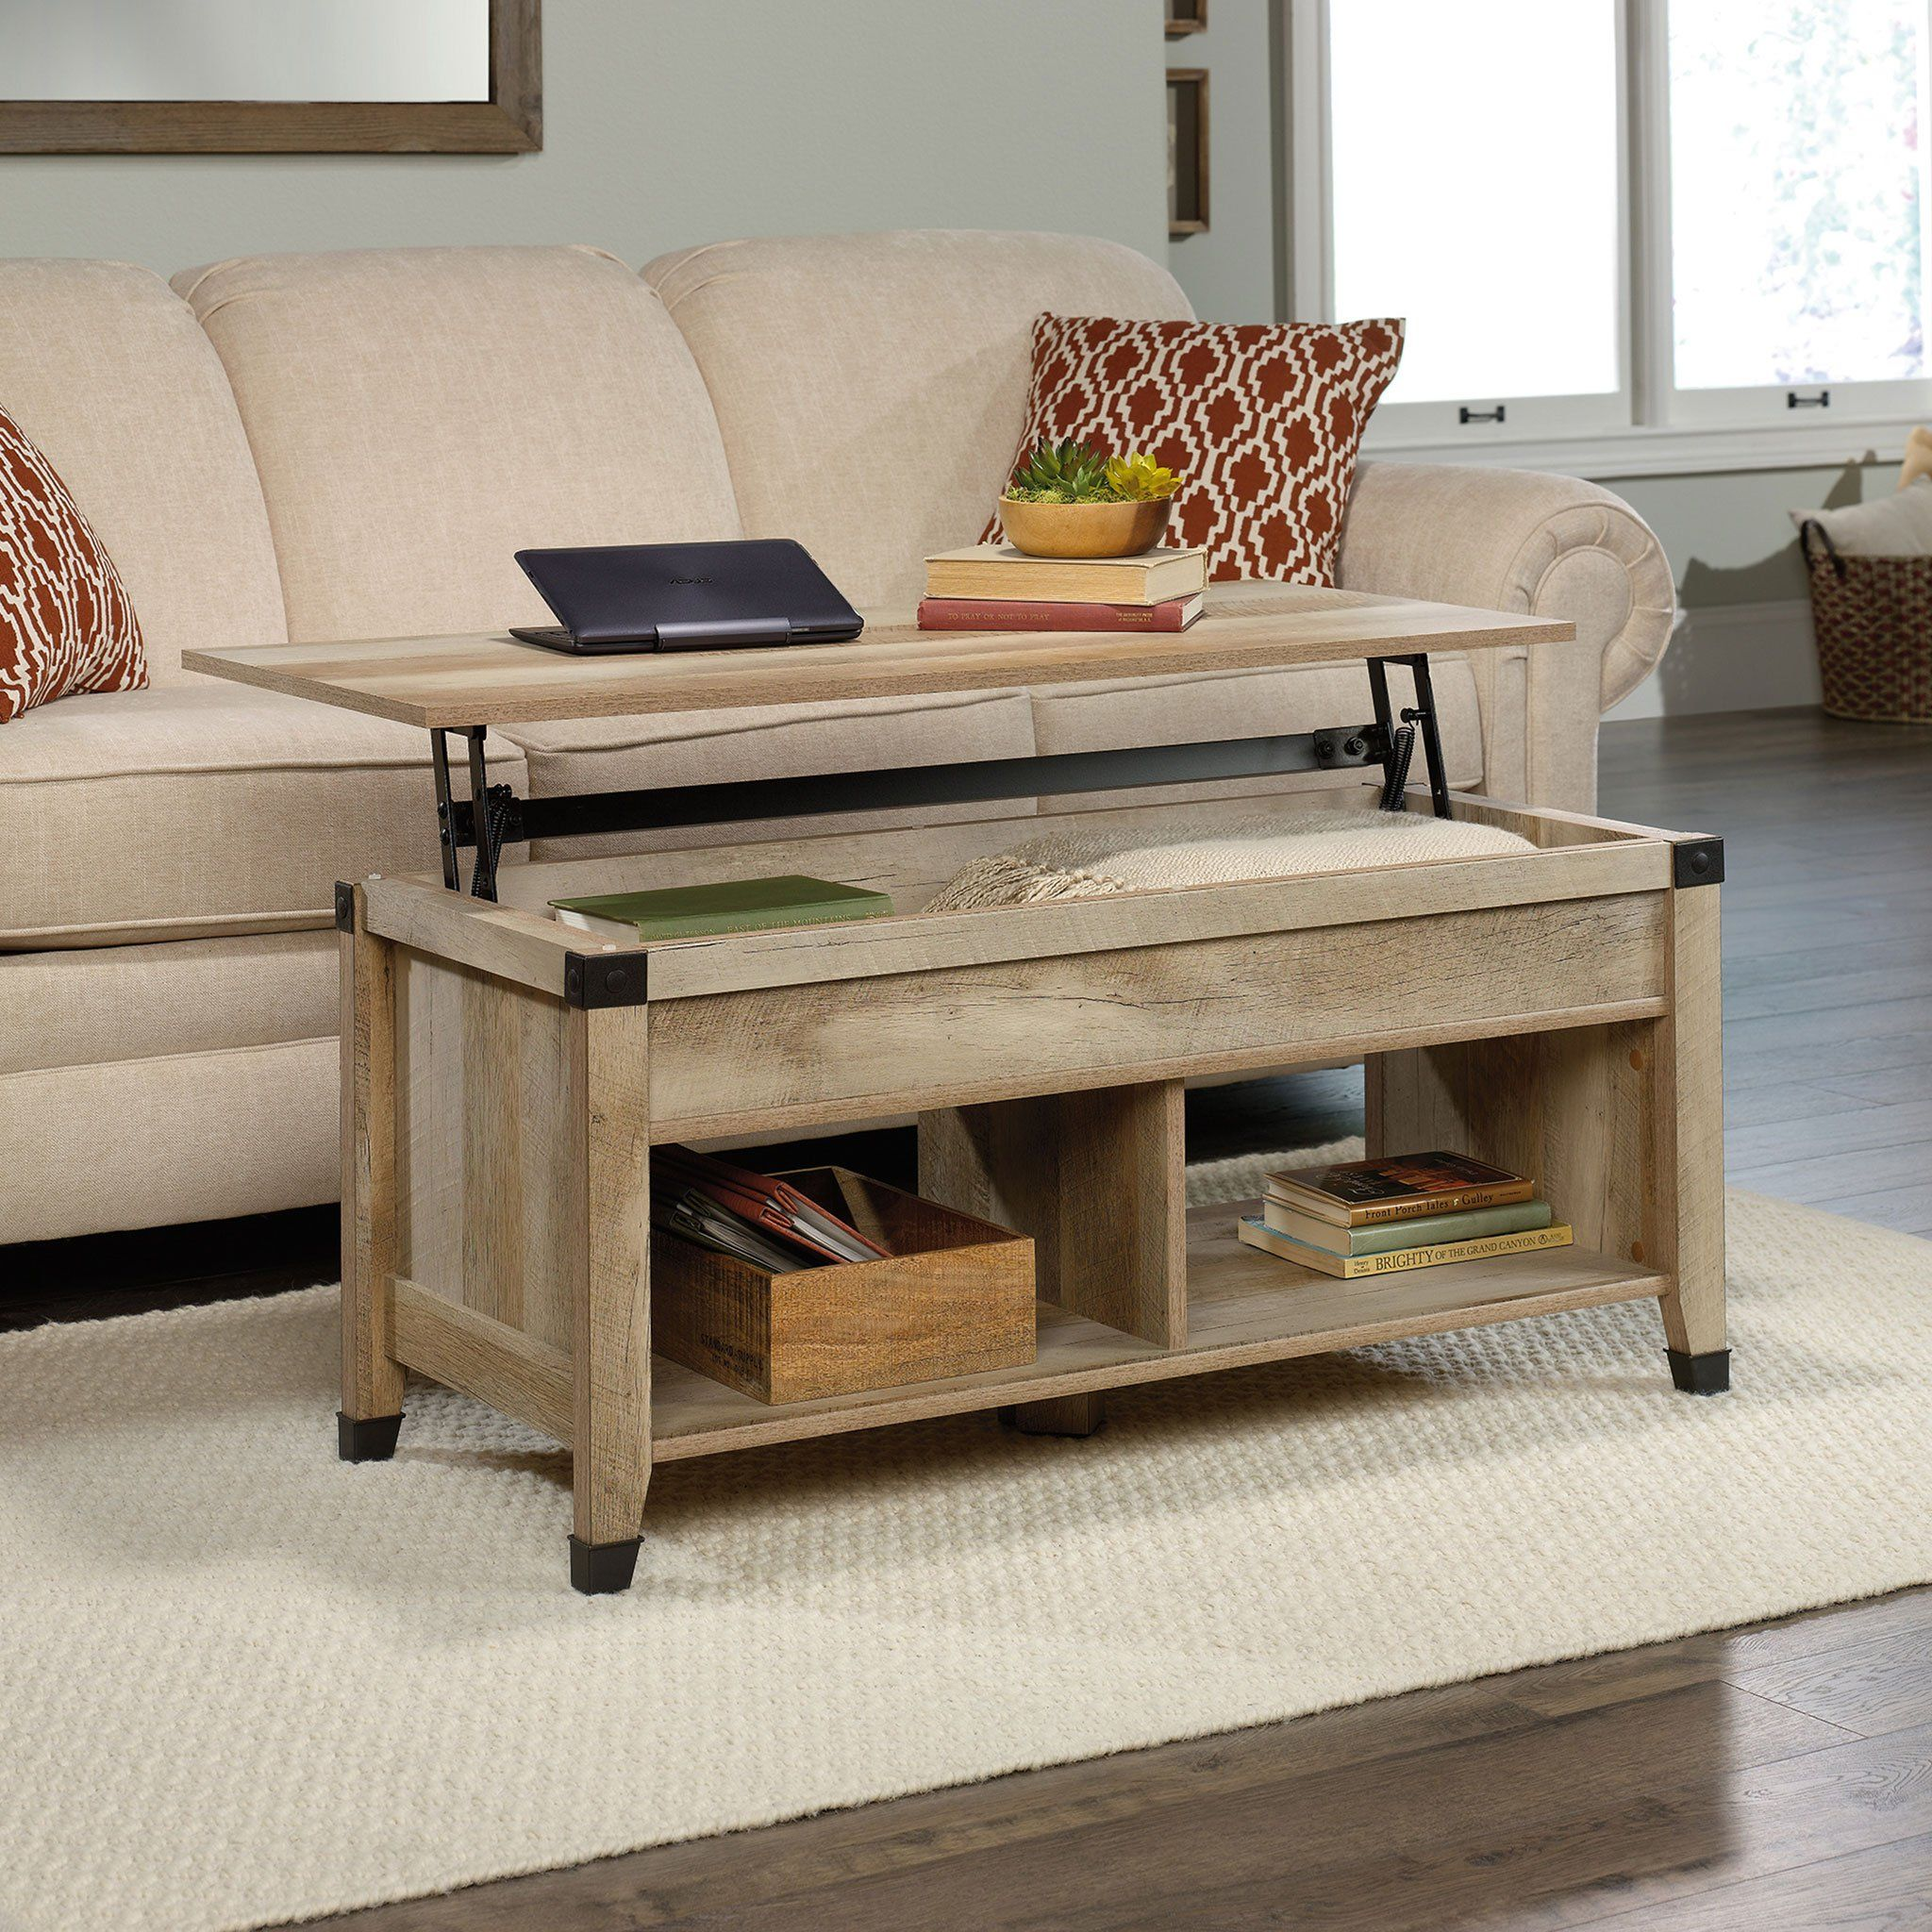 Carson Forge Masuta Cafea Cu Lift Top Coffee Table Coffee Table With Storage Rustic Wooden Coffee Table [ 2048 x 2048 Pixel ]